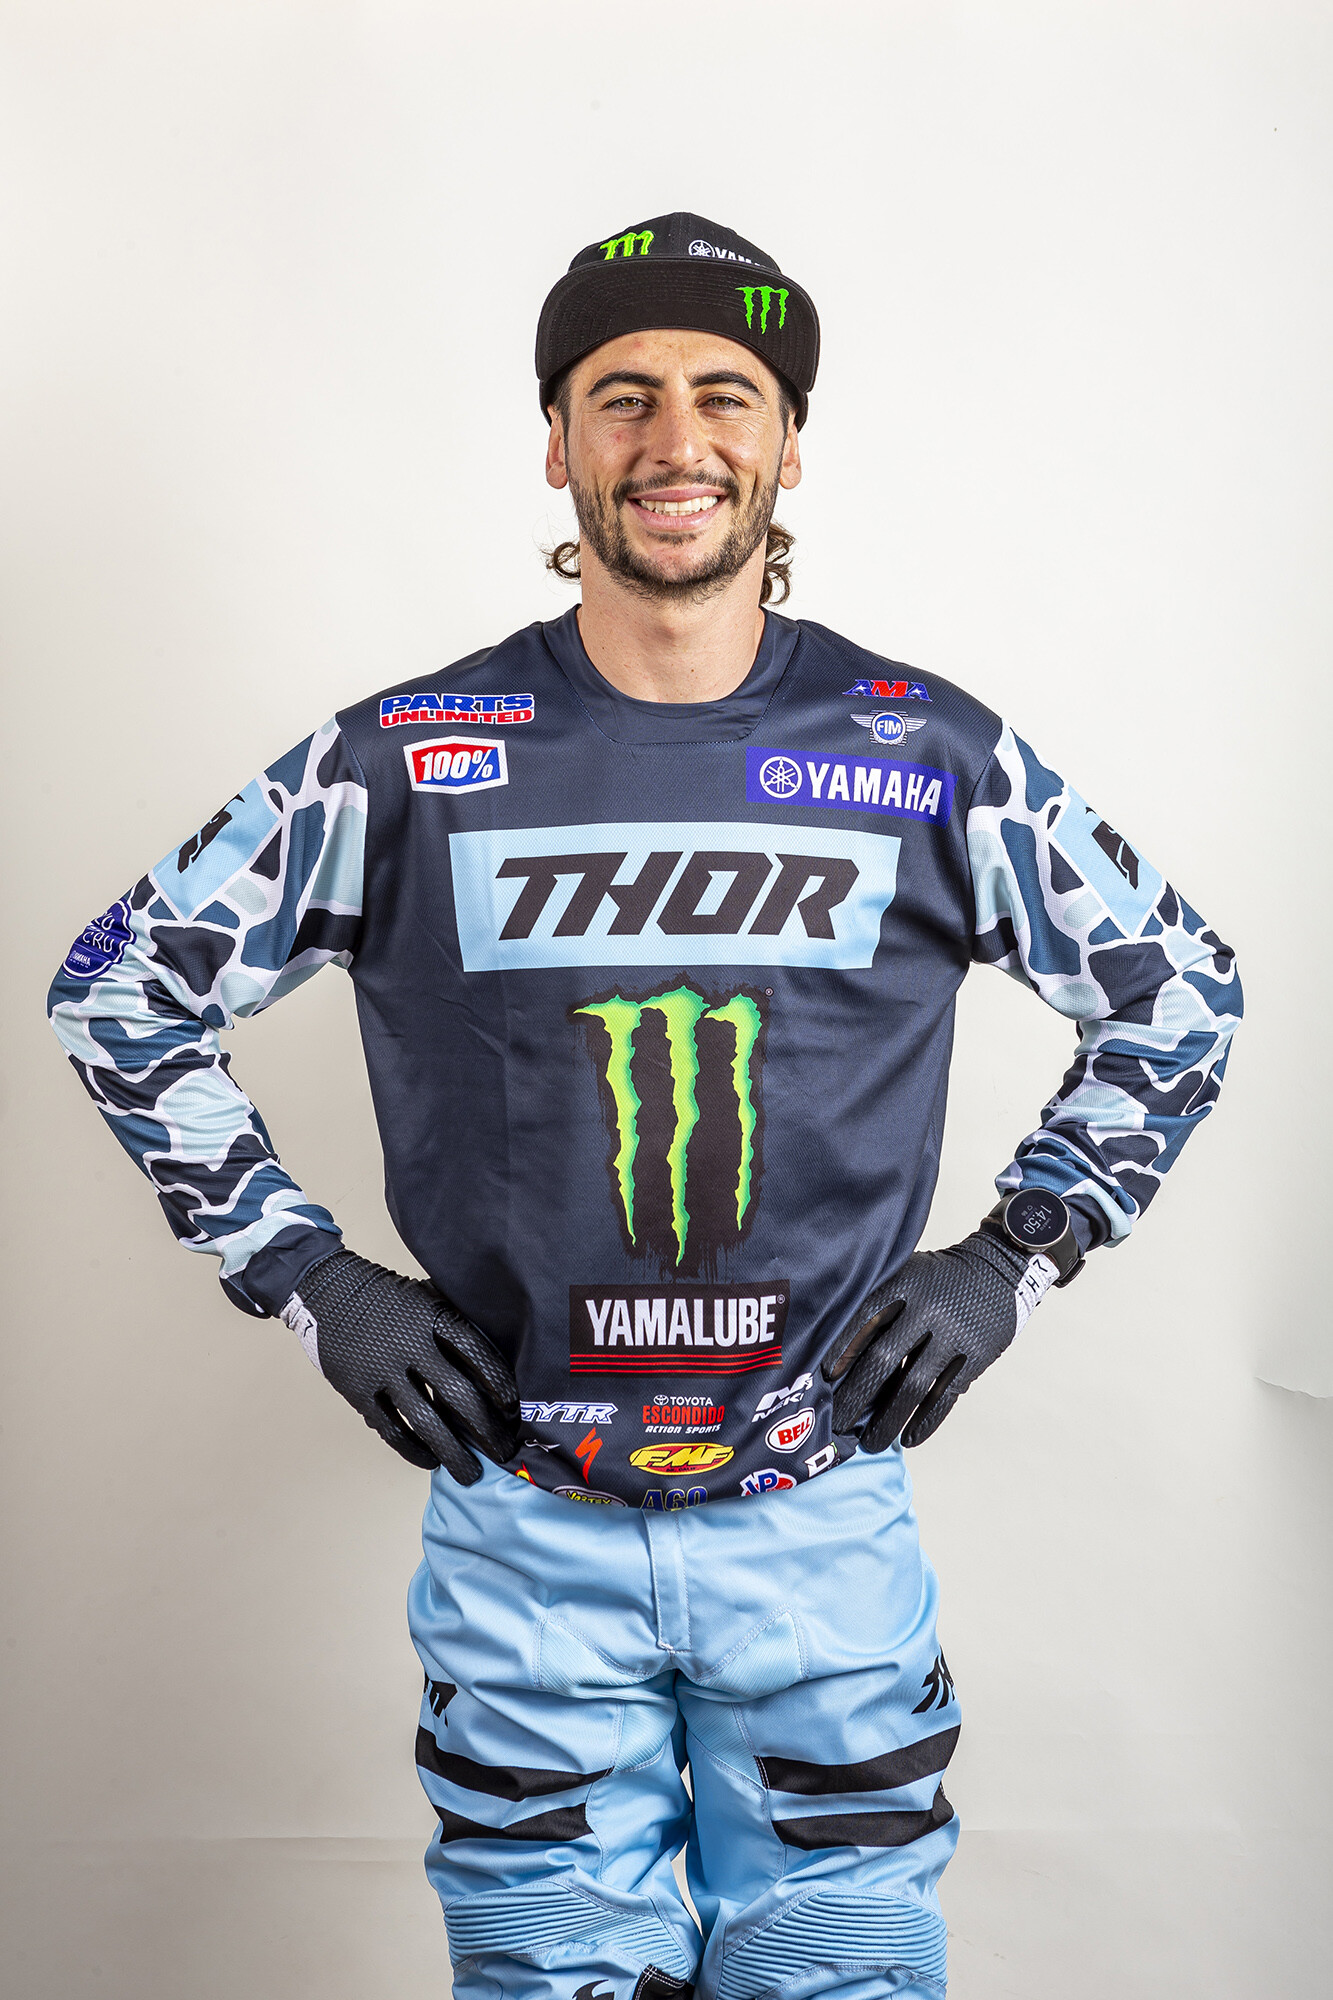 Dylan Ferrandis stays with his team as he moves up to the 450 Class.Yamaha Motor Corp